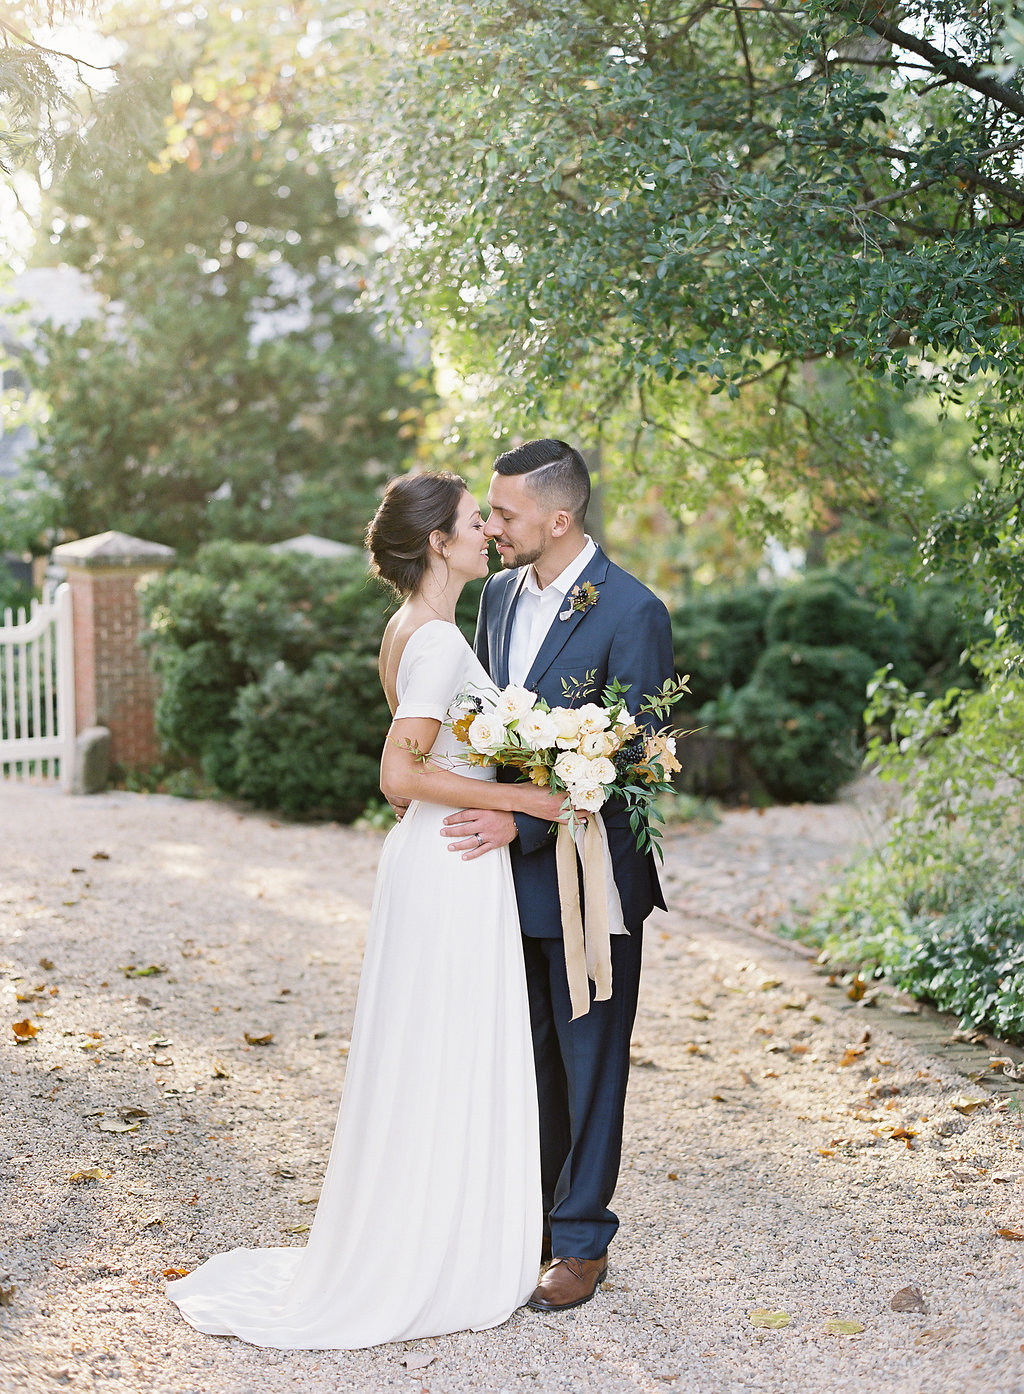 French Inspired Fall Wedding with Fine Art Destination Wedding Planner East Made Event Company and DC Film Photographer Vicki Grafton Photography at Tudor Place in Washington DC-21.jpg